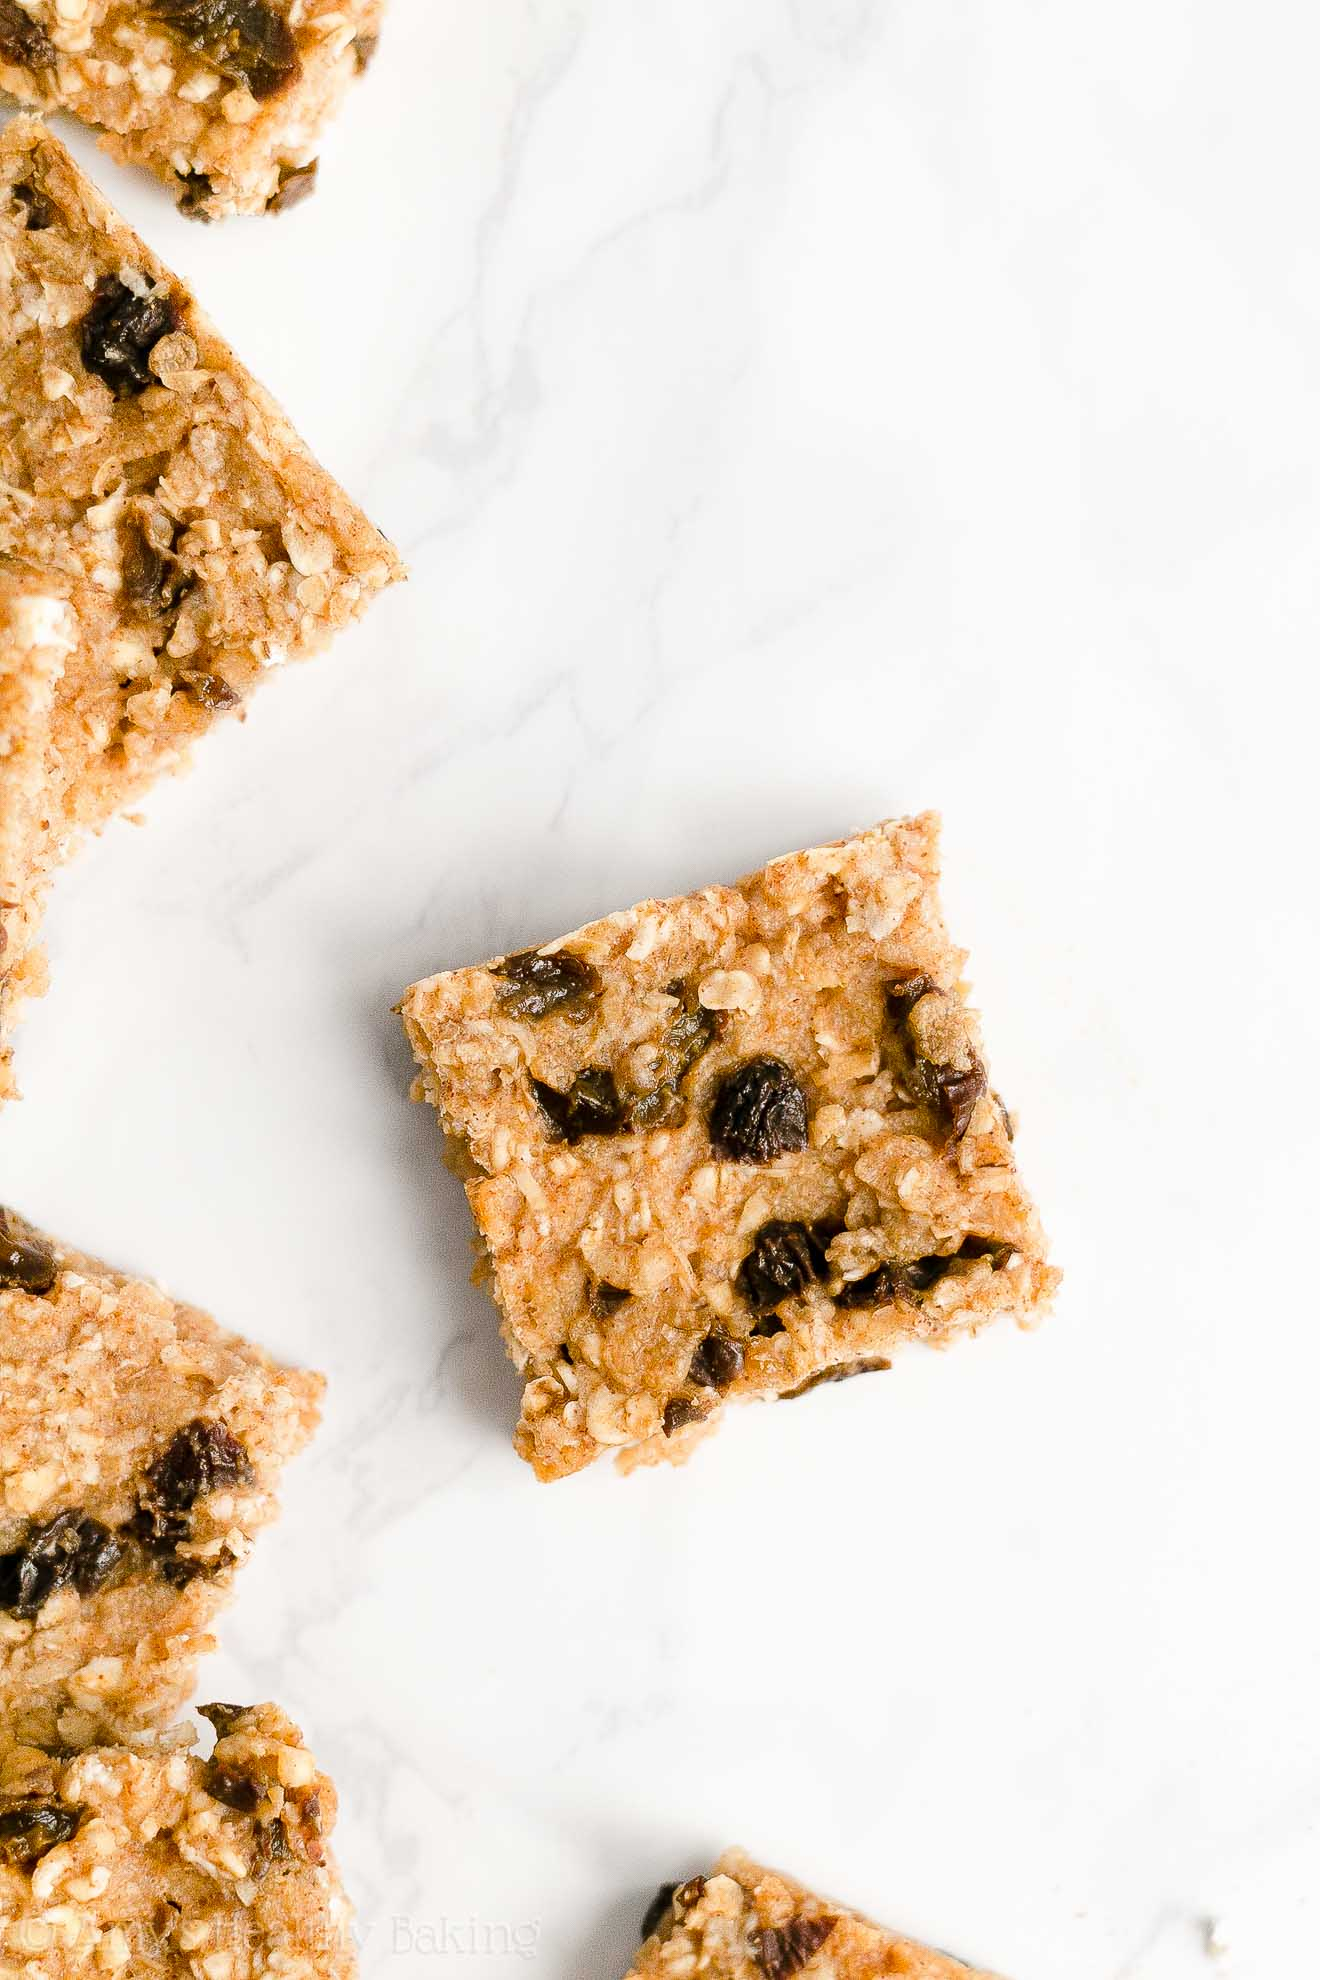 Easy Healthy Clean Eating Low Sugar Chewy Oatmeal Raisin Granola Bars